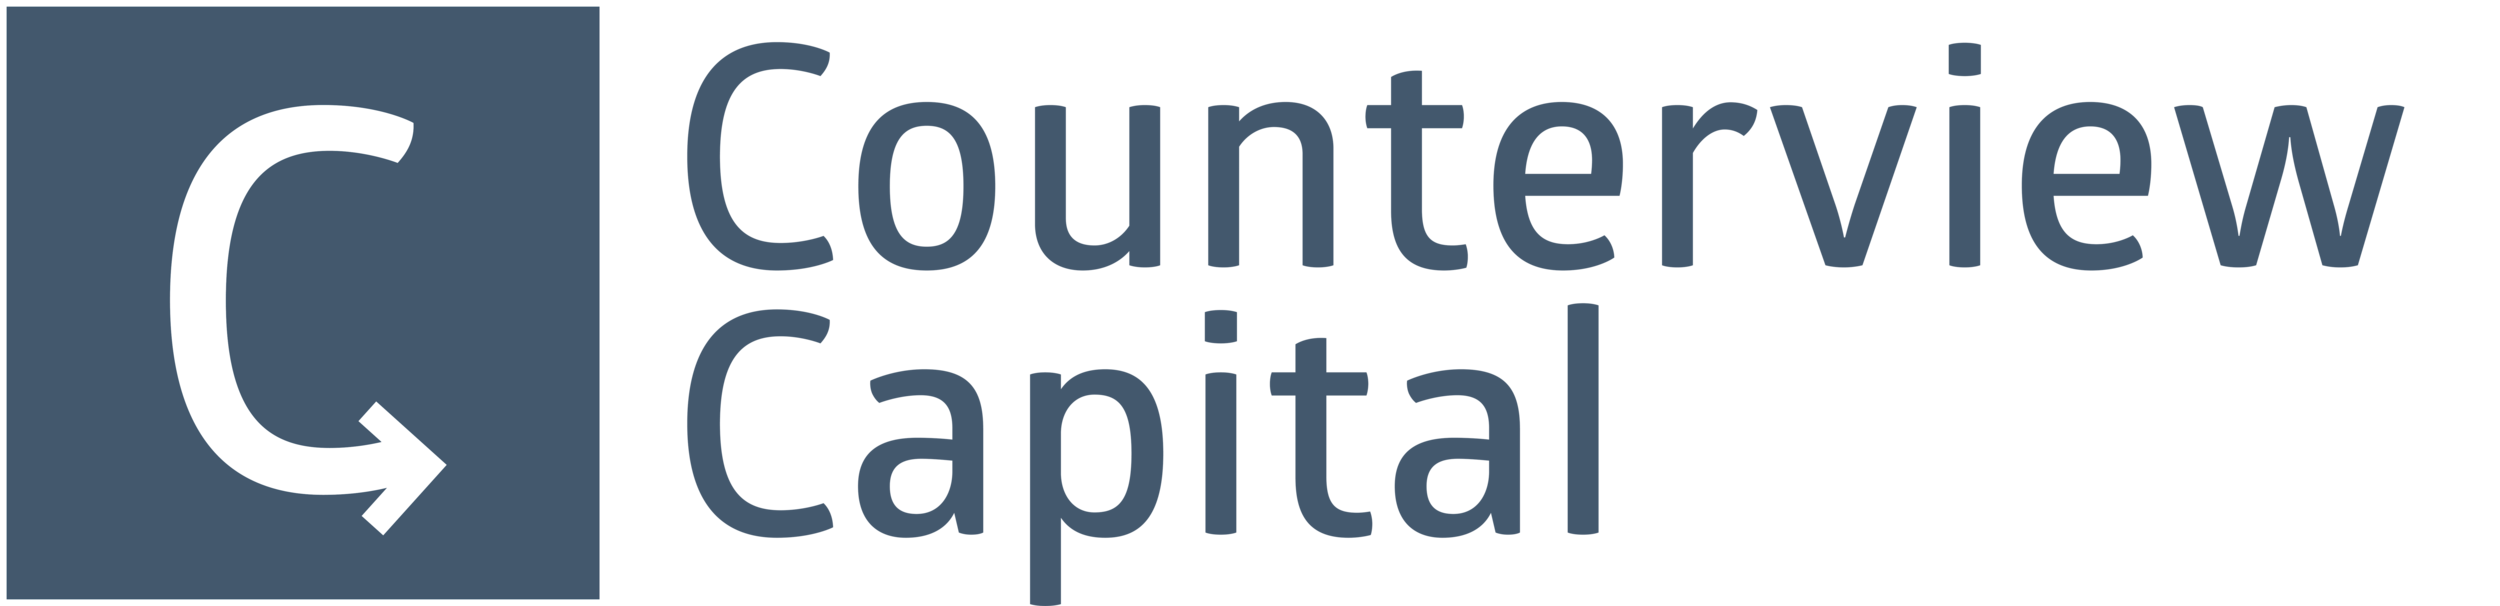 Counterview Capital Logo.png